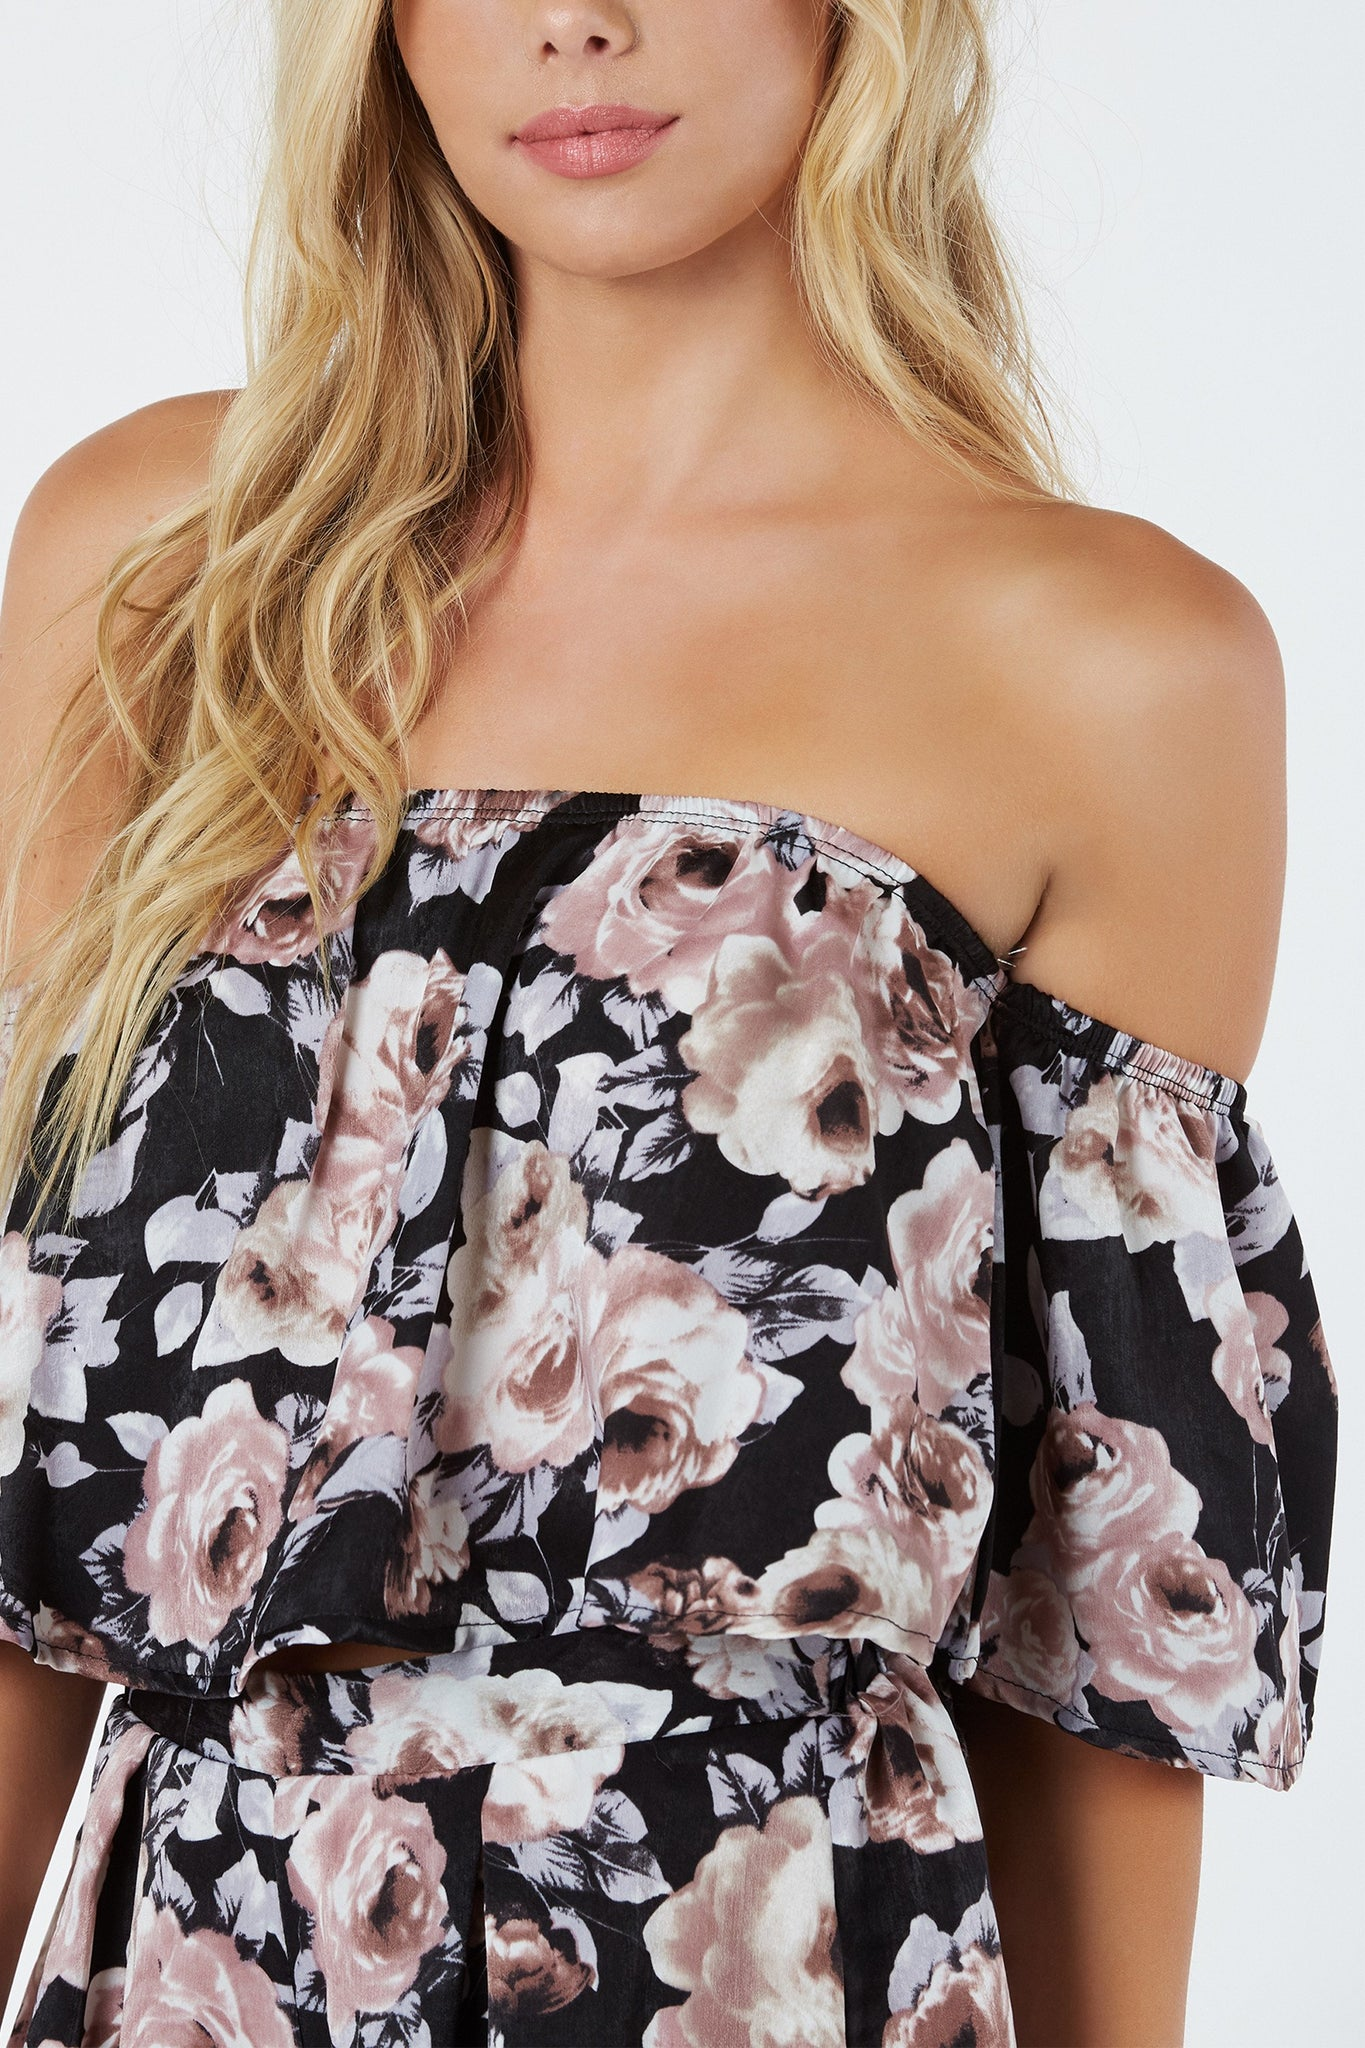 Chic off shoulder top with stain-like finish. Floral print throughout with flowy cropped hem finish.